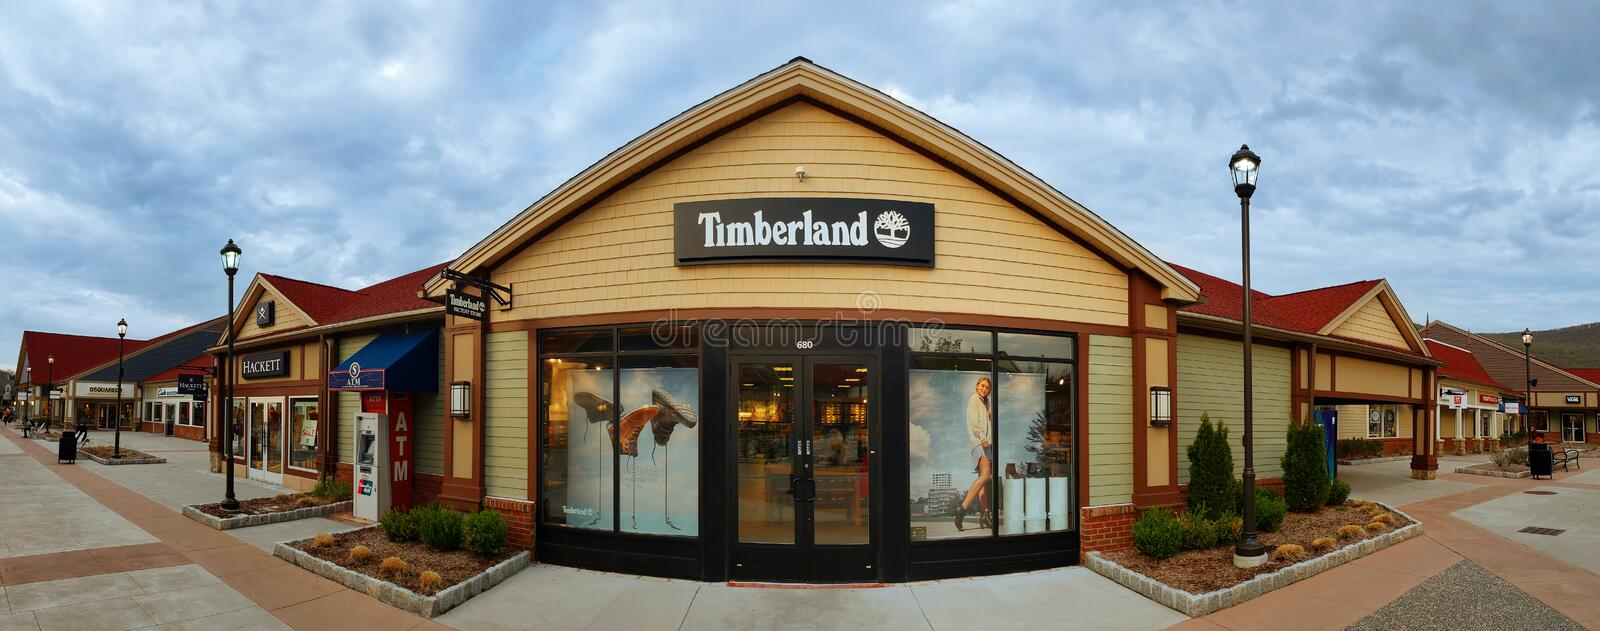 Timberland Store in Woodbury Common Premium Outlet Mall royalty free stock image